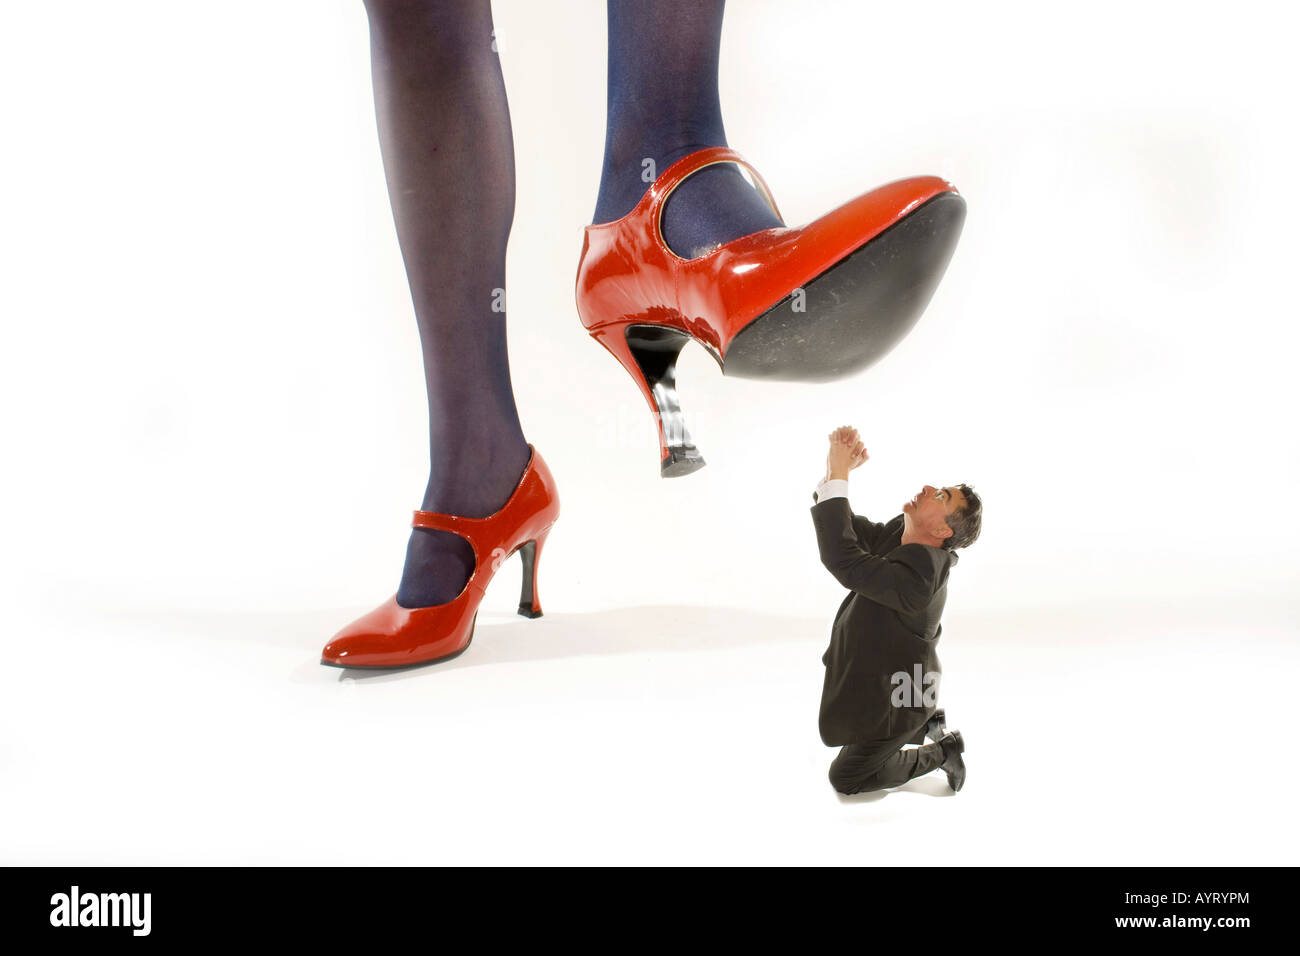 Woman in red high heels stepping on a shrunken man - Stock Image